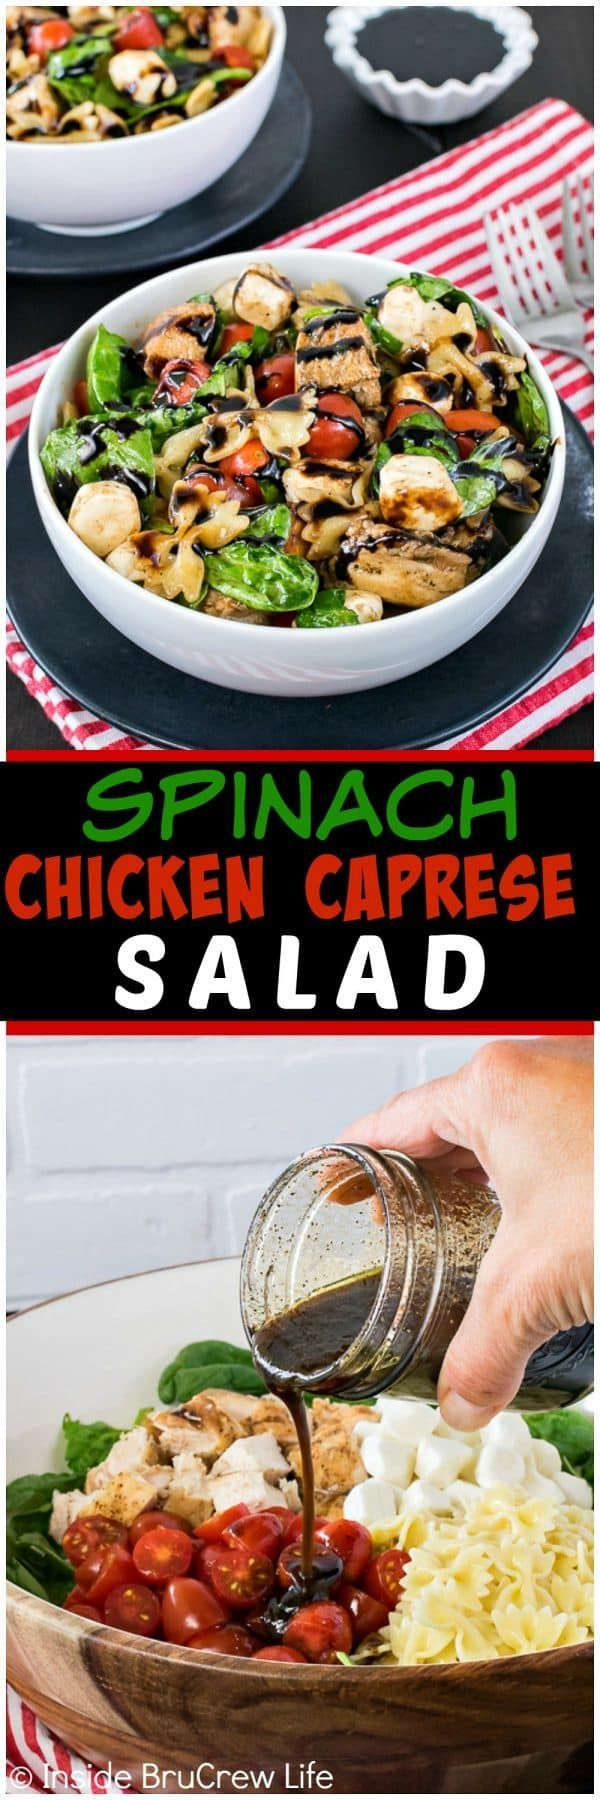 Spinach Chicken Caprese Salad - a homemade balsamic dressing mixed in with veggies and chicken makes this salad a healthy option for dinner.  Easy recipe to make on those busy nights!